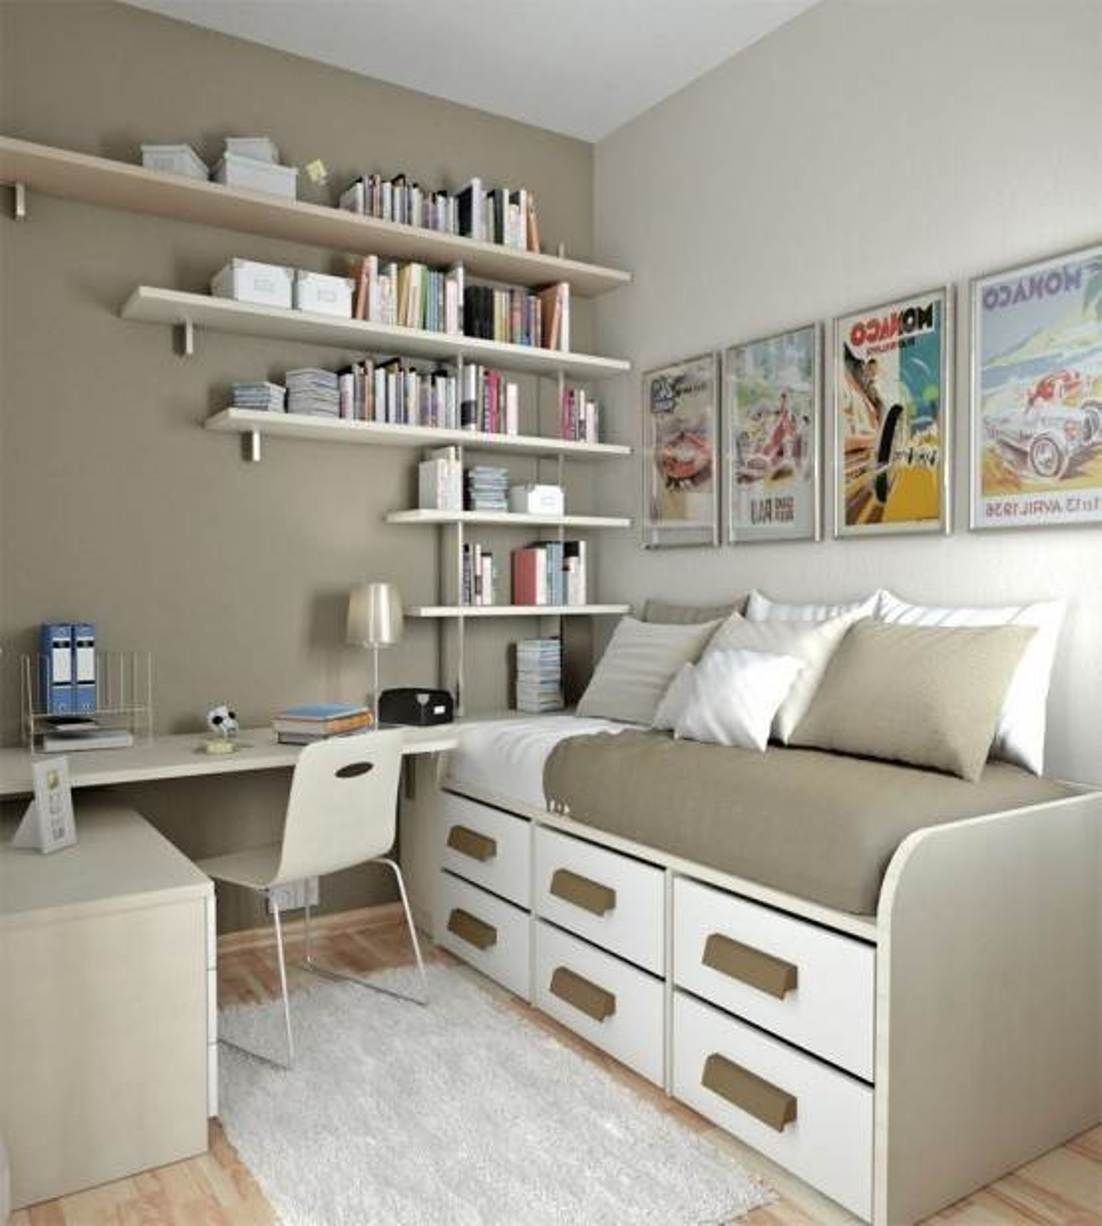 Clever storage ideas for small spaces - 30 Clever Space Saving Design Ideas For Small Homes